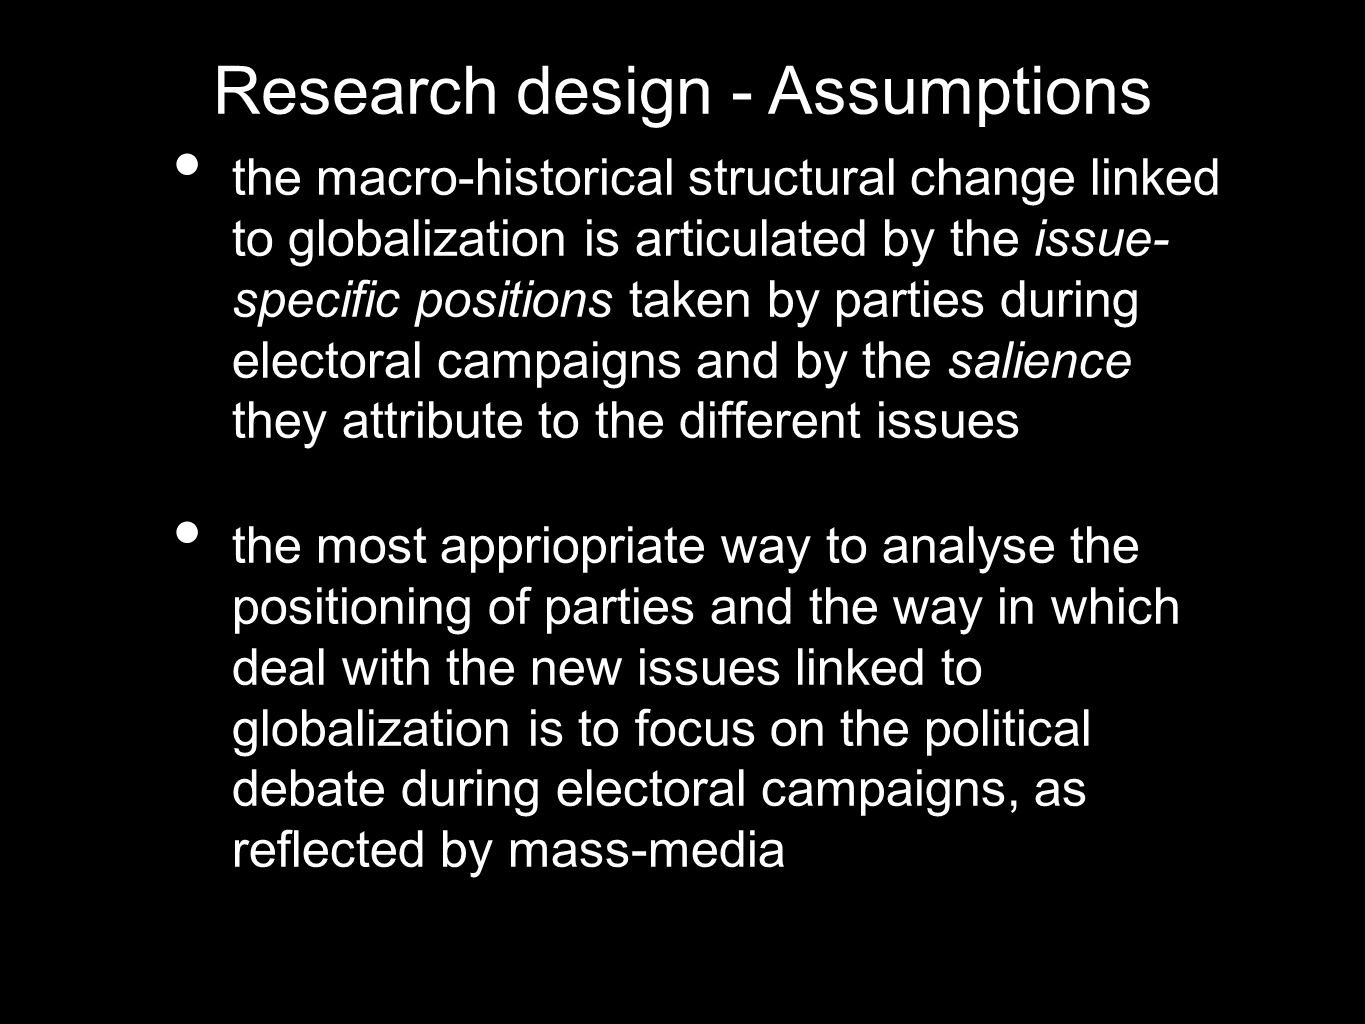 the macro-historical structural change linked to globalization is articulated by the issue- specific positions taken by parties during electoral campa